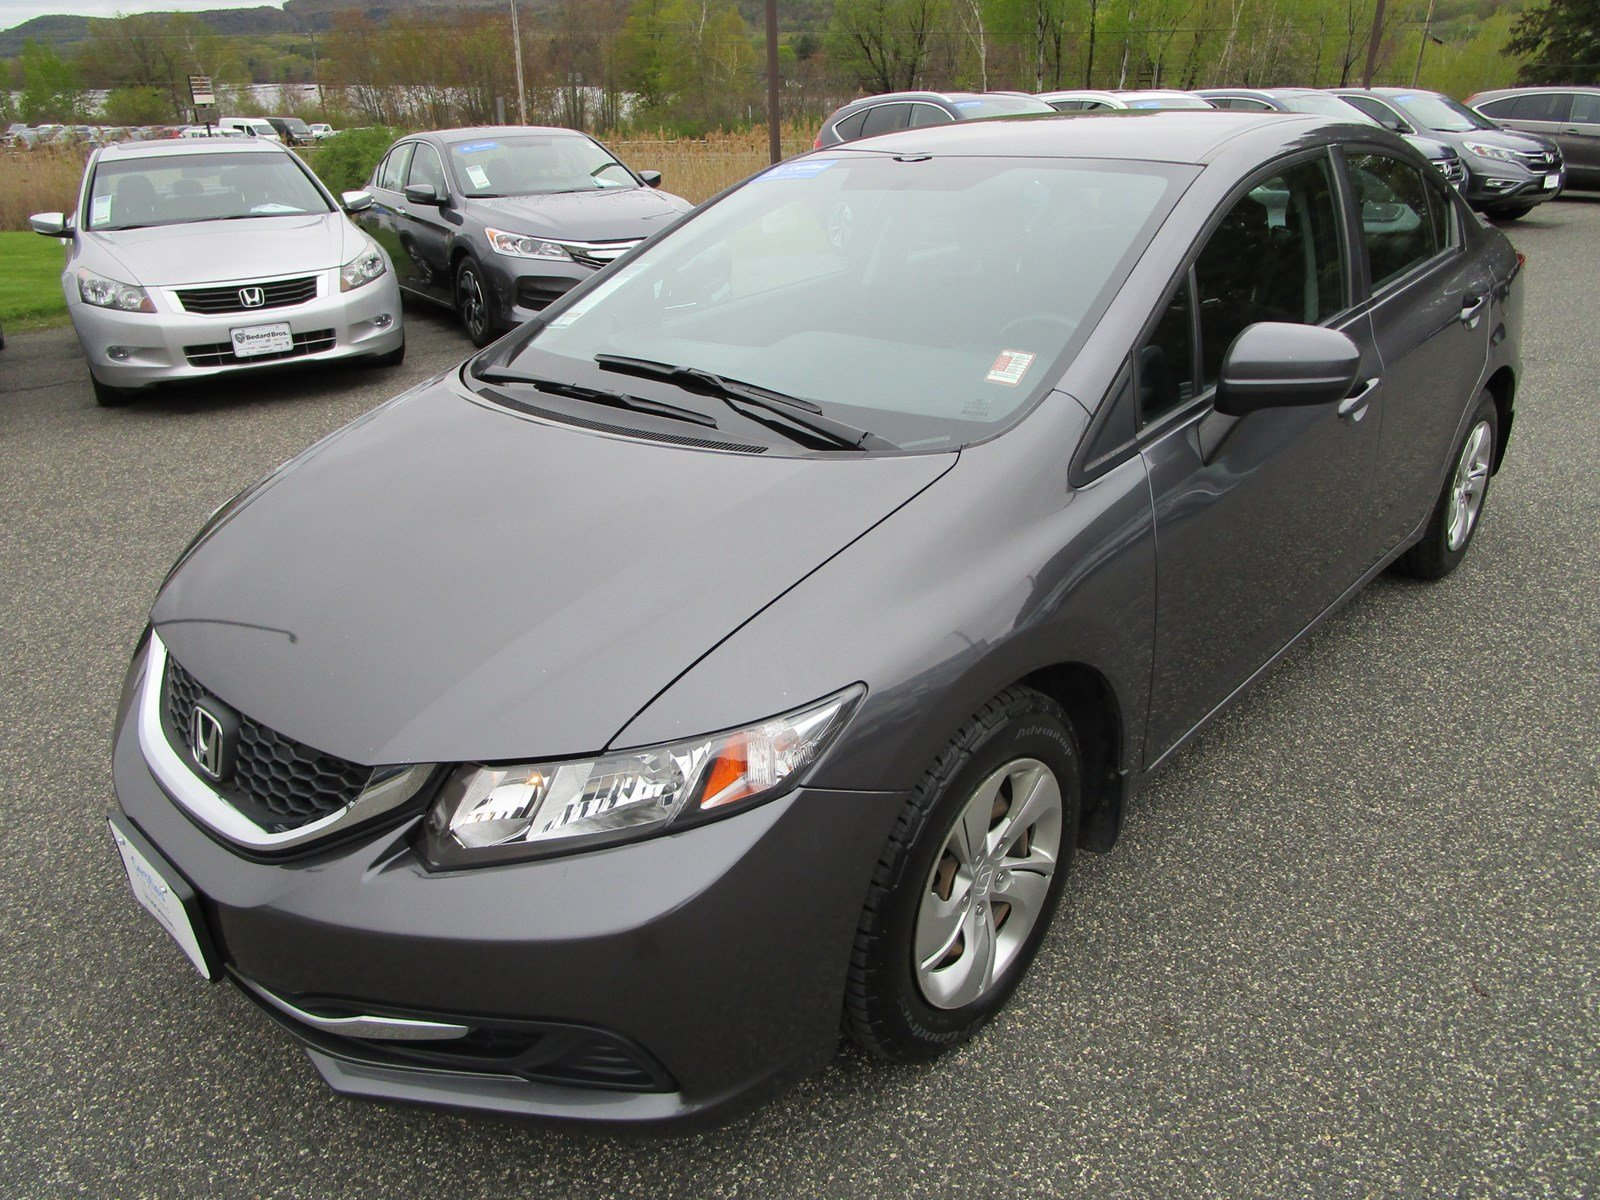 Certified Pre-Owned 2014 Honda Civic Sedan LX